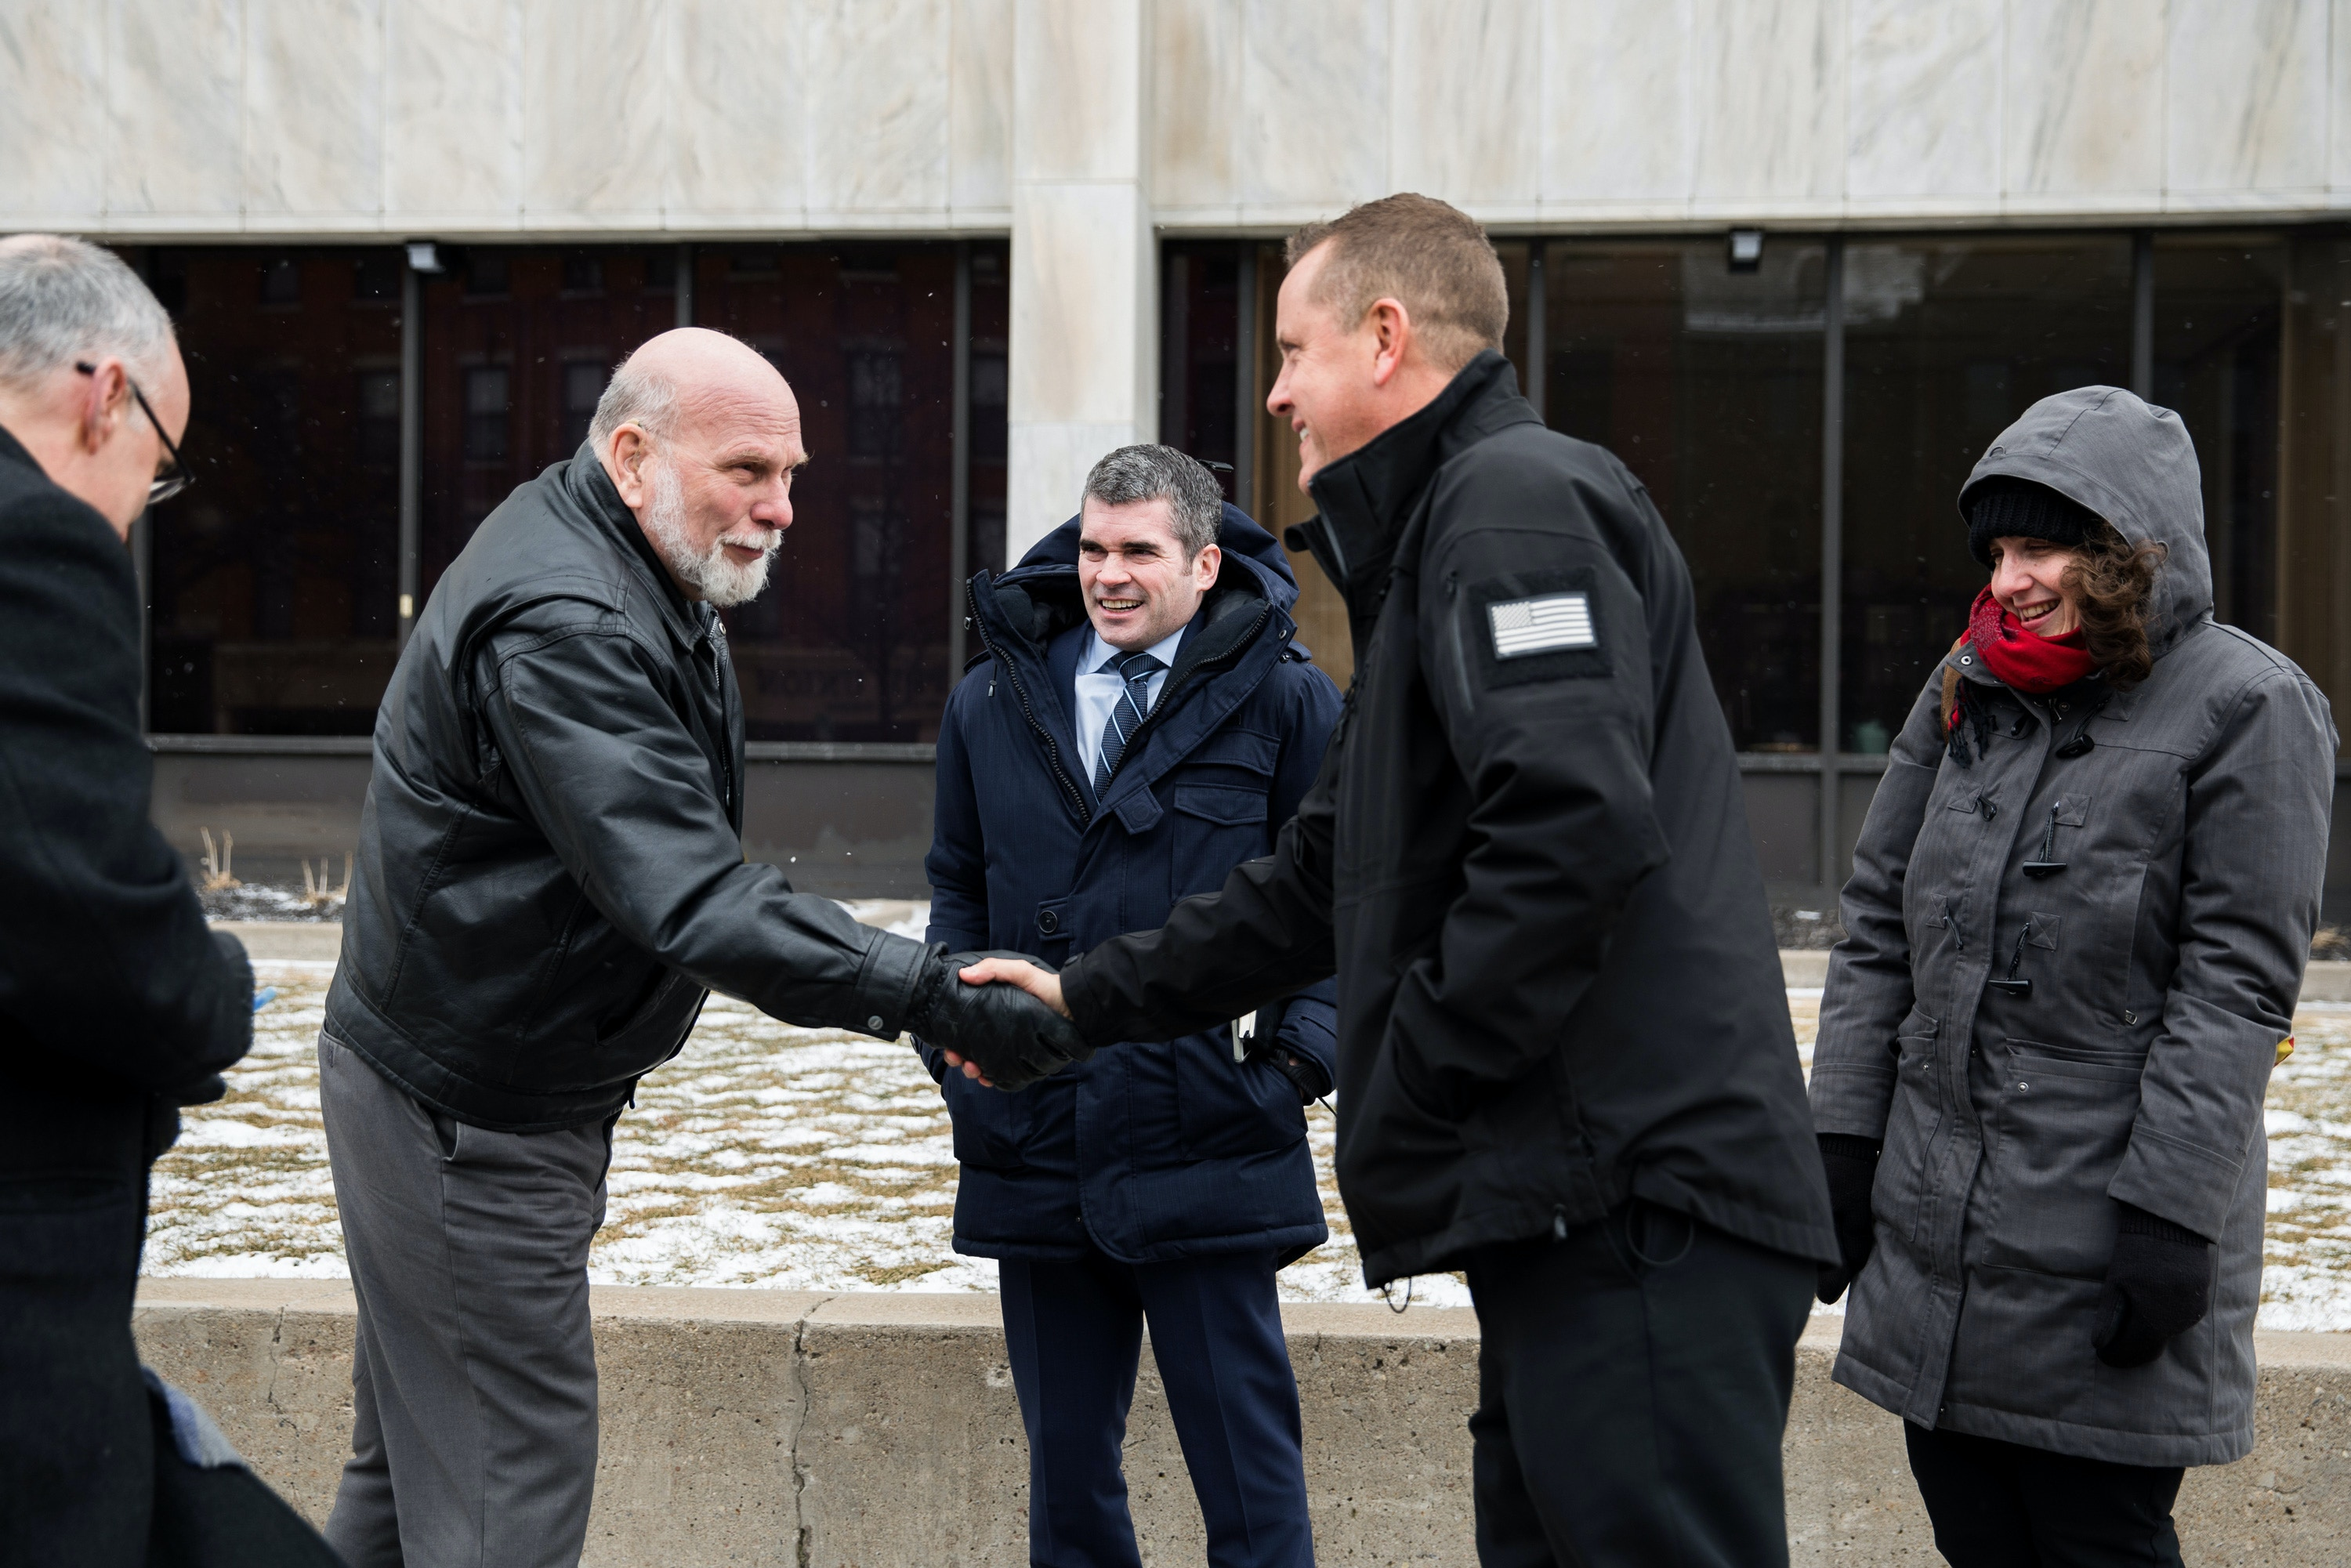 Supporter of Kimino Ngoran, Bill Genthner introduces himself to Sheriff Craig Apple at the U.S. District Court for Kimino Nigoran's hearing Monday.